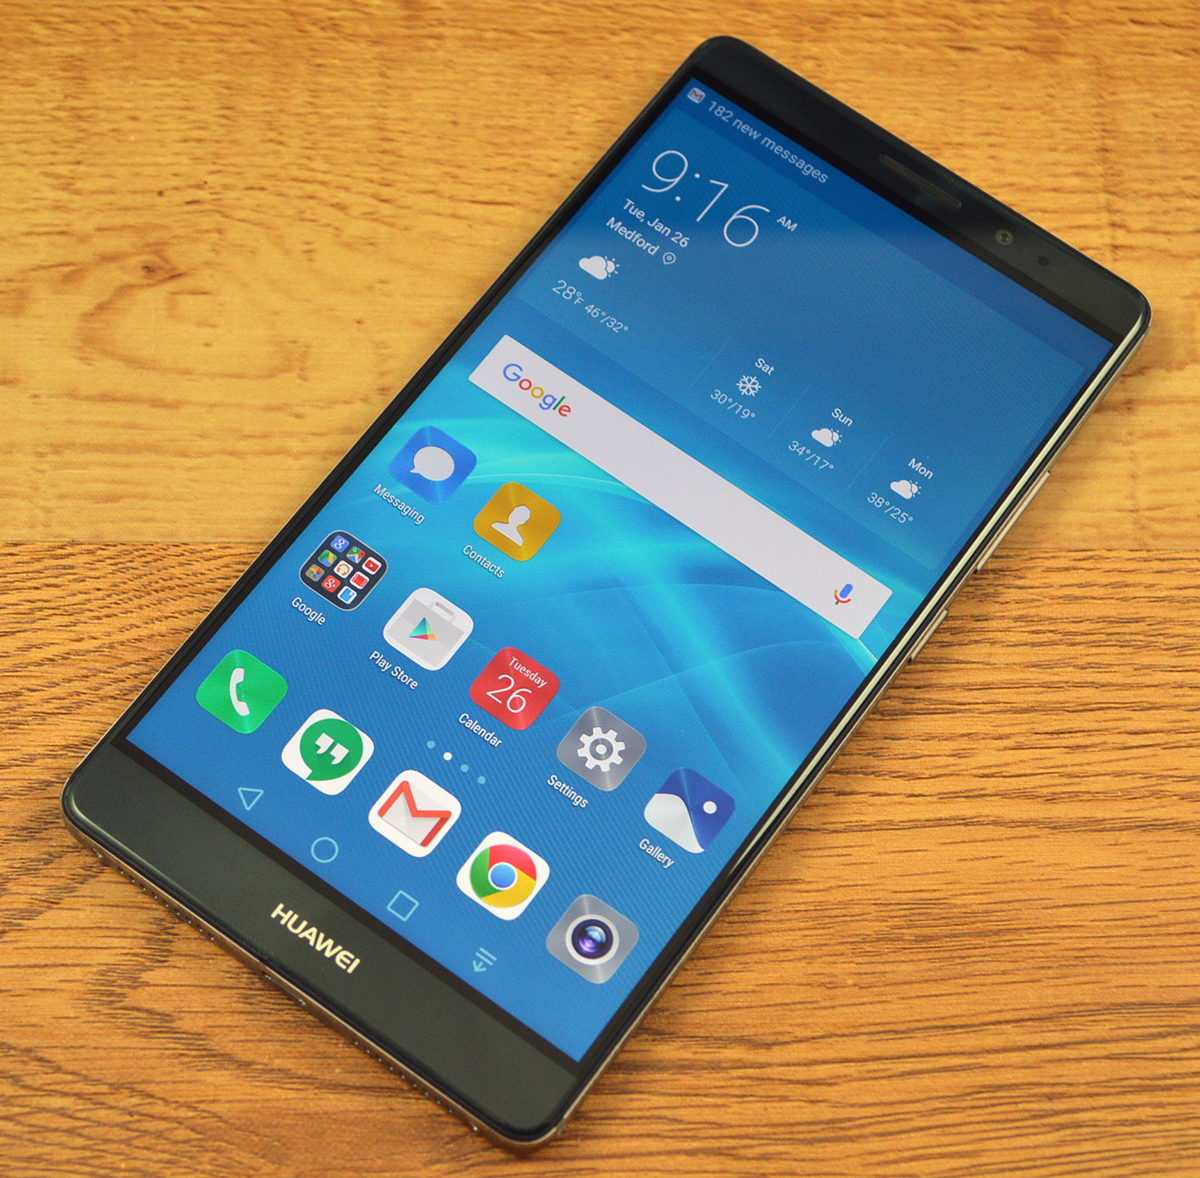 The Huawei Mate 8 is a large, all-metal Android smartphone.